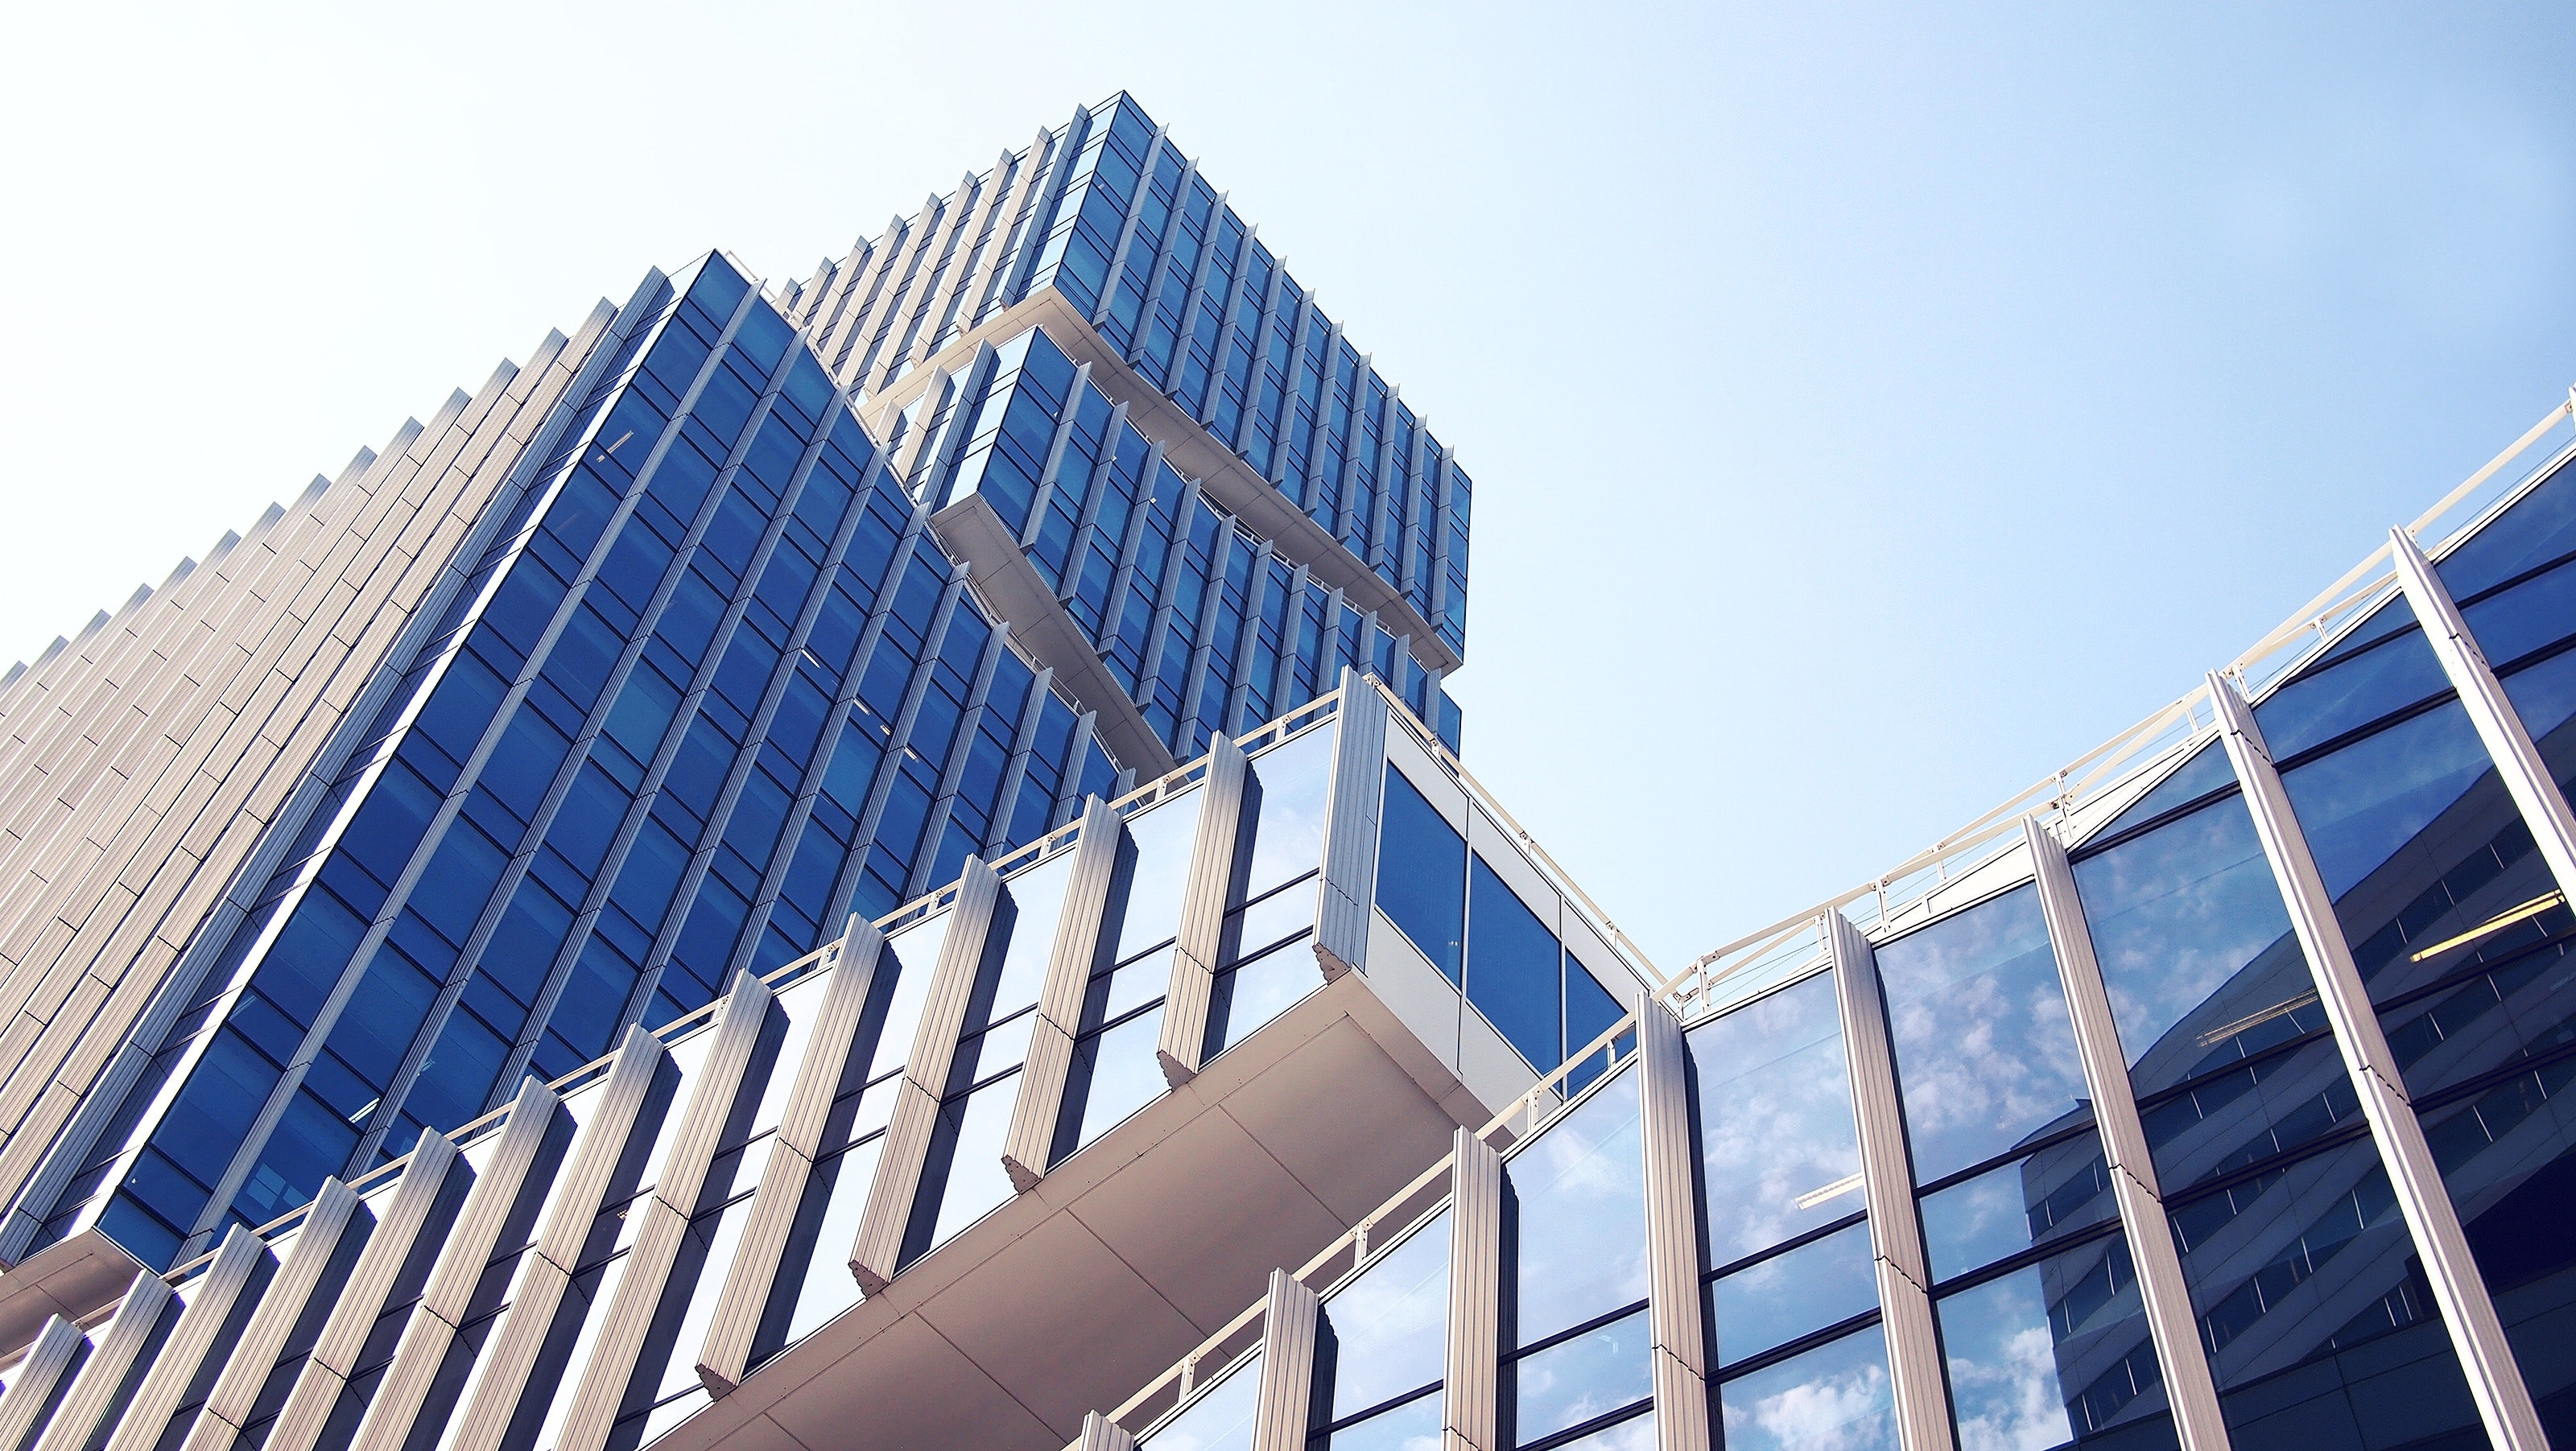 Picture of a strata building